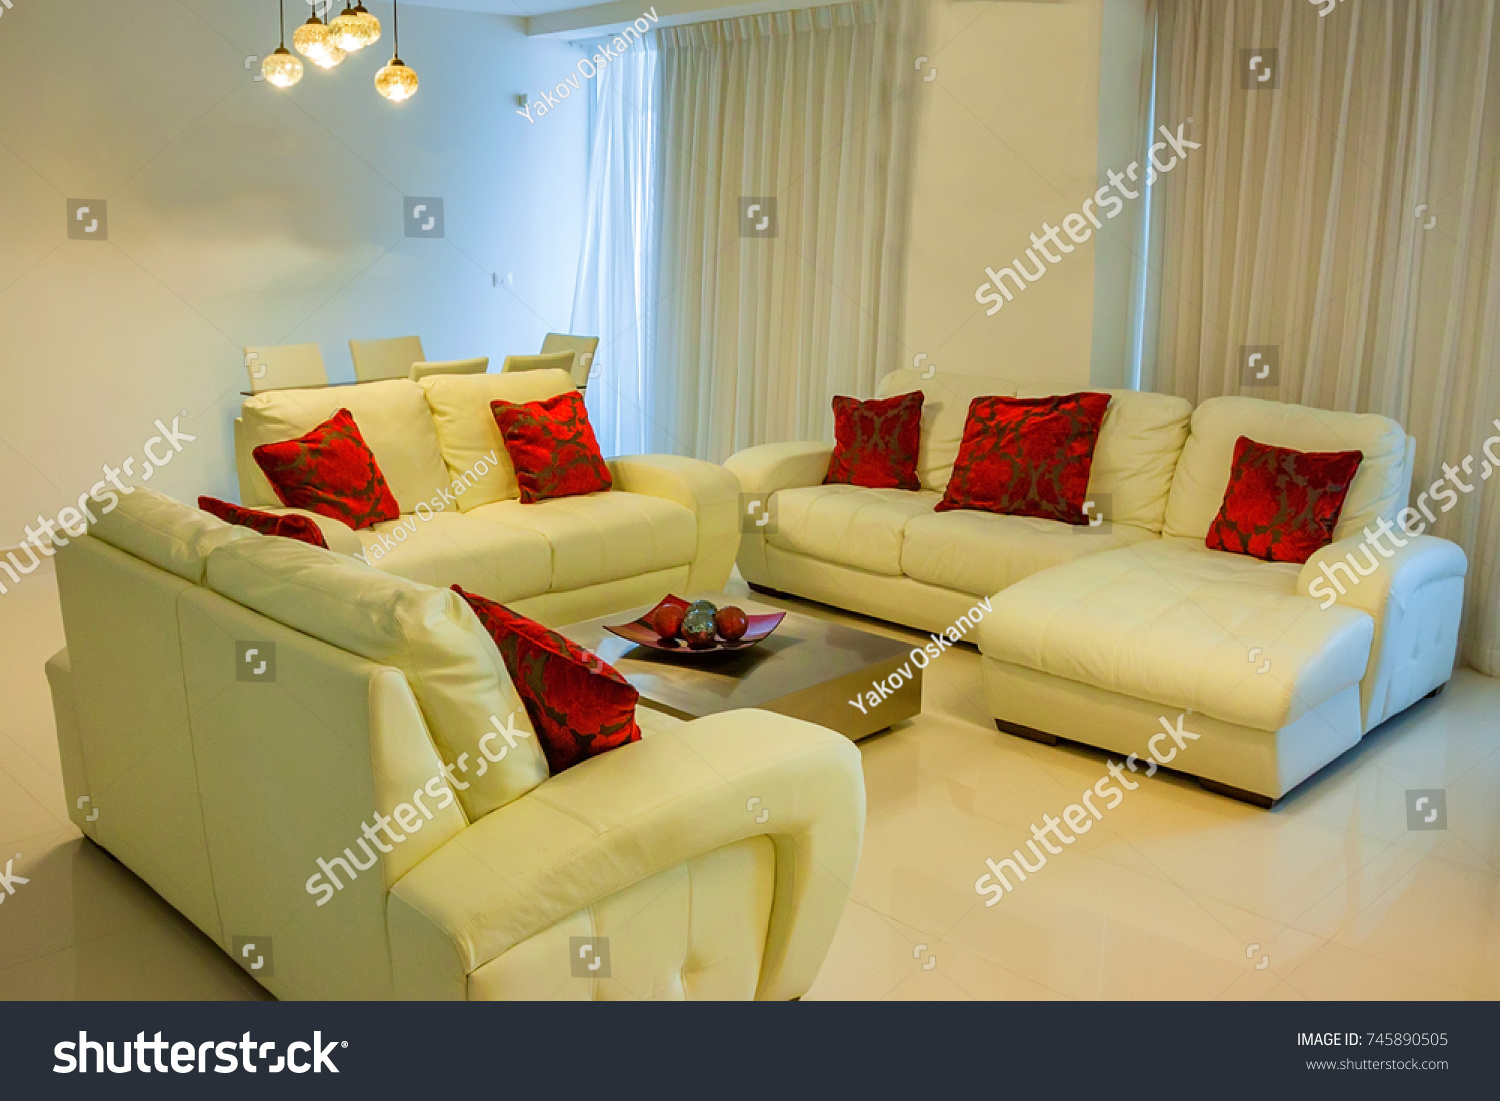 Foyer Hotel : Foyer hotel white sofas red cushions stock photo royalty free